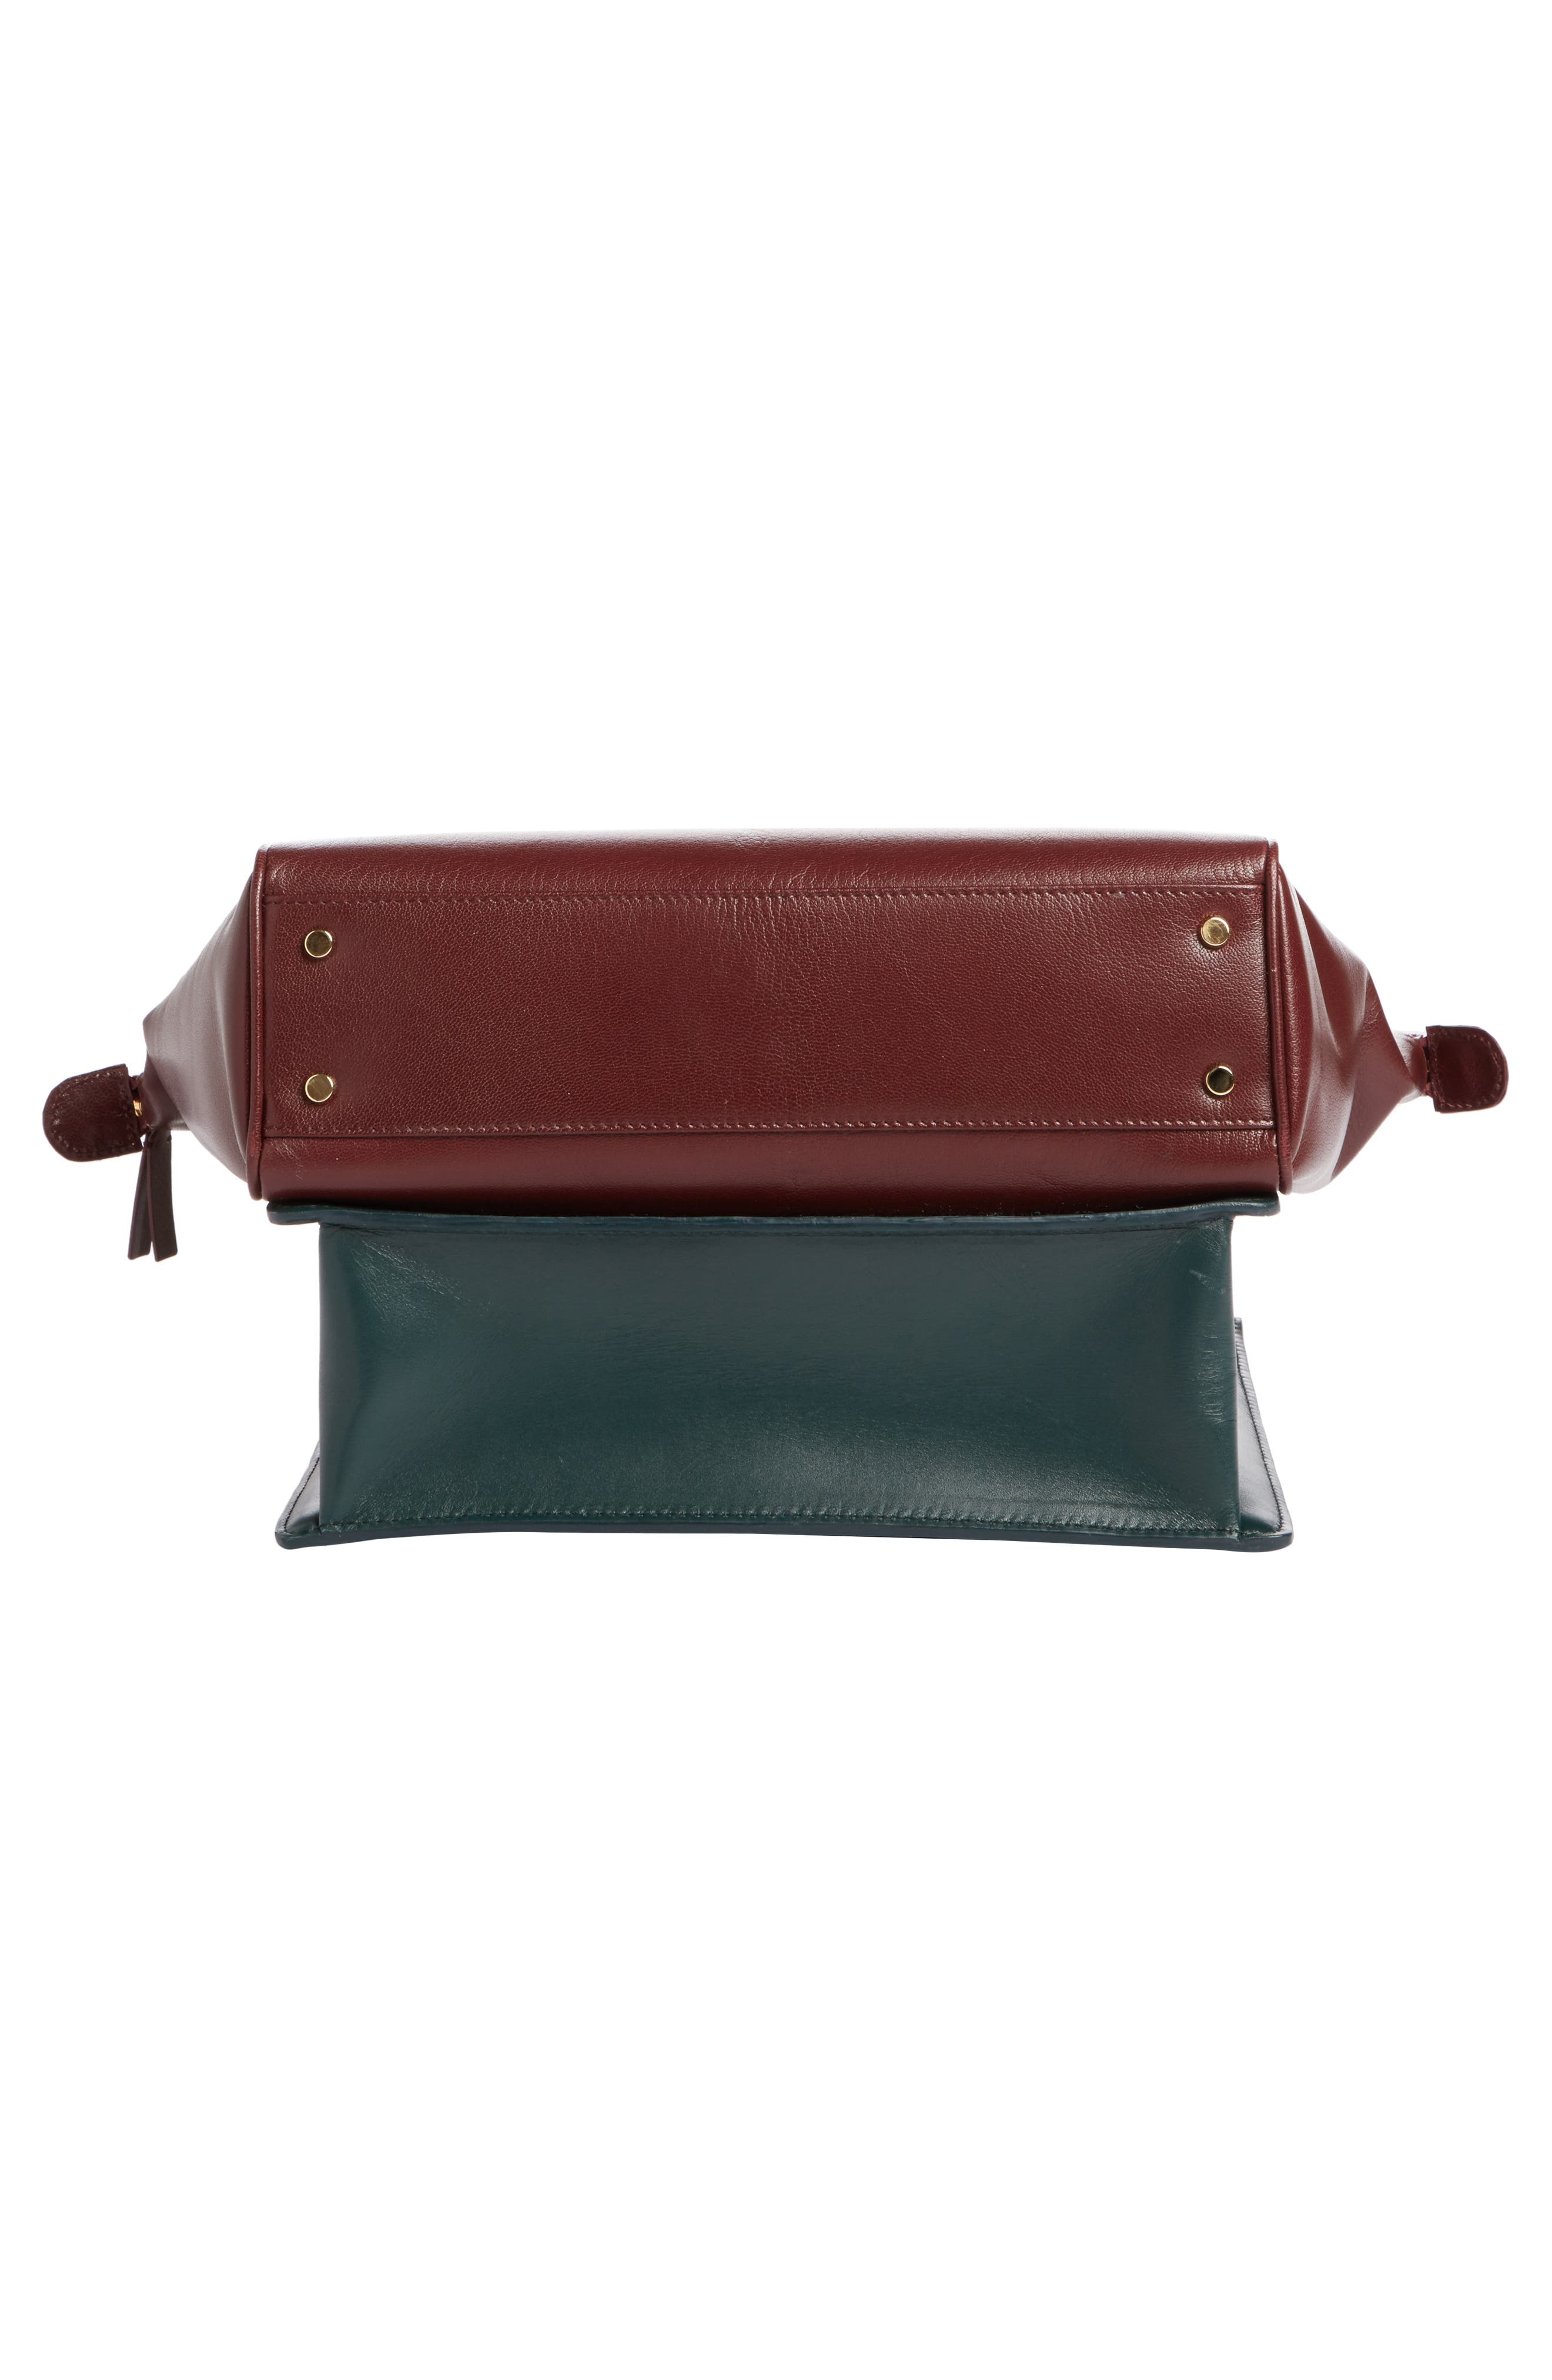 Collage Double Calfskin Leather Bag,                             Alternate thumbnail 4, color,                             641